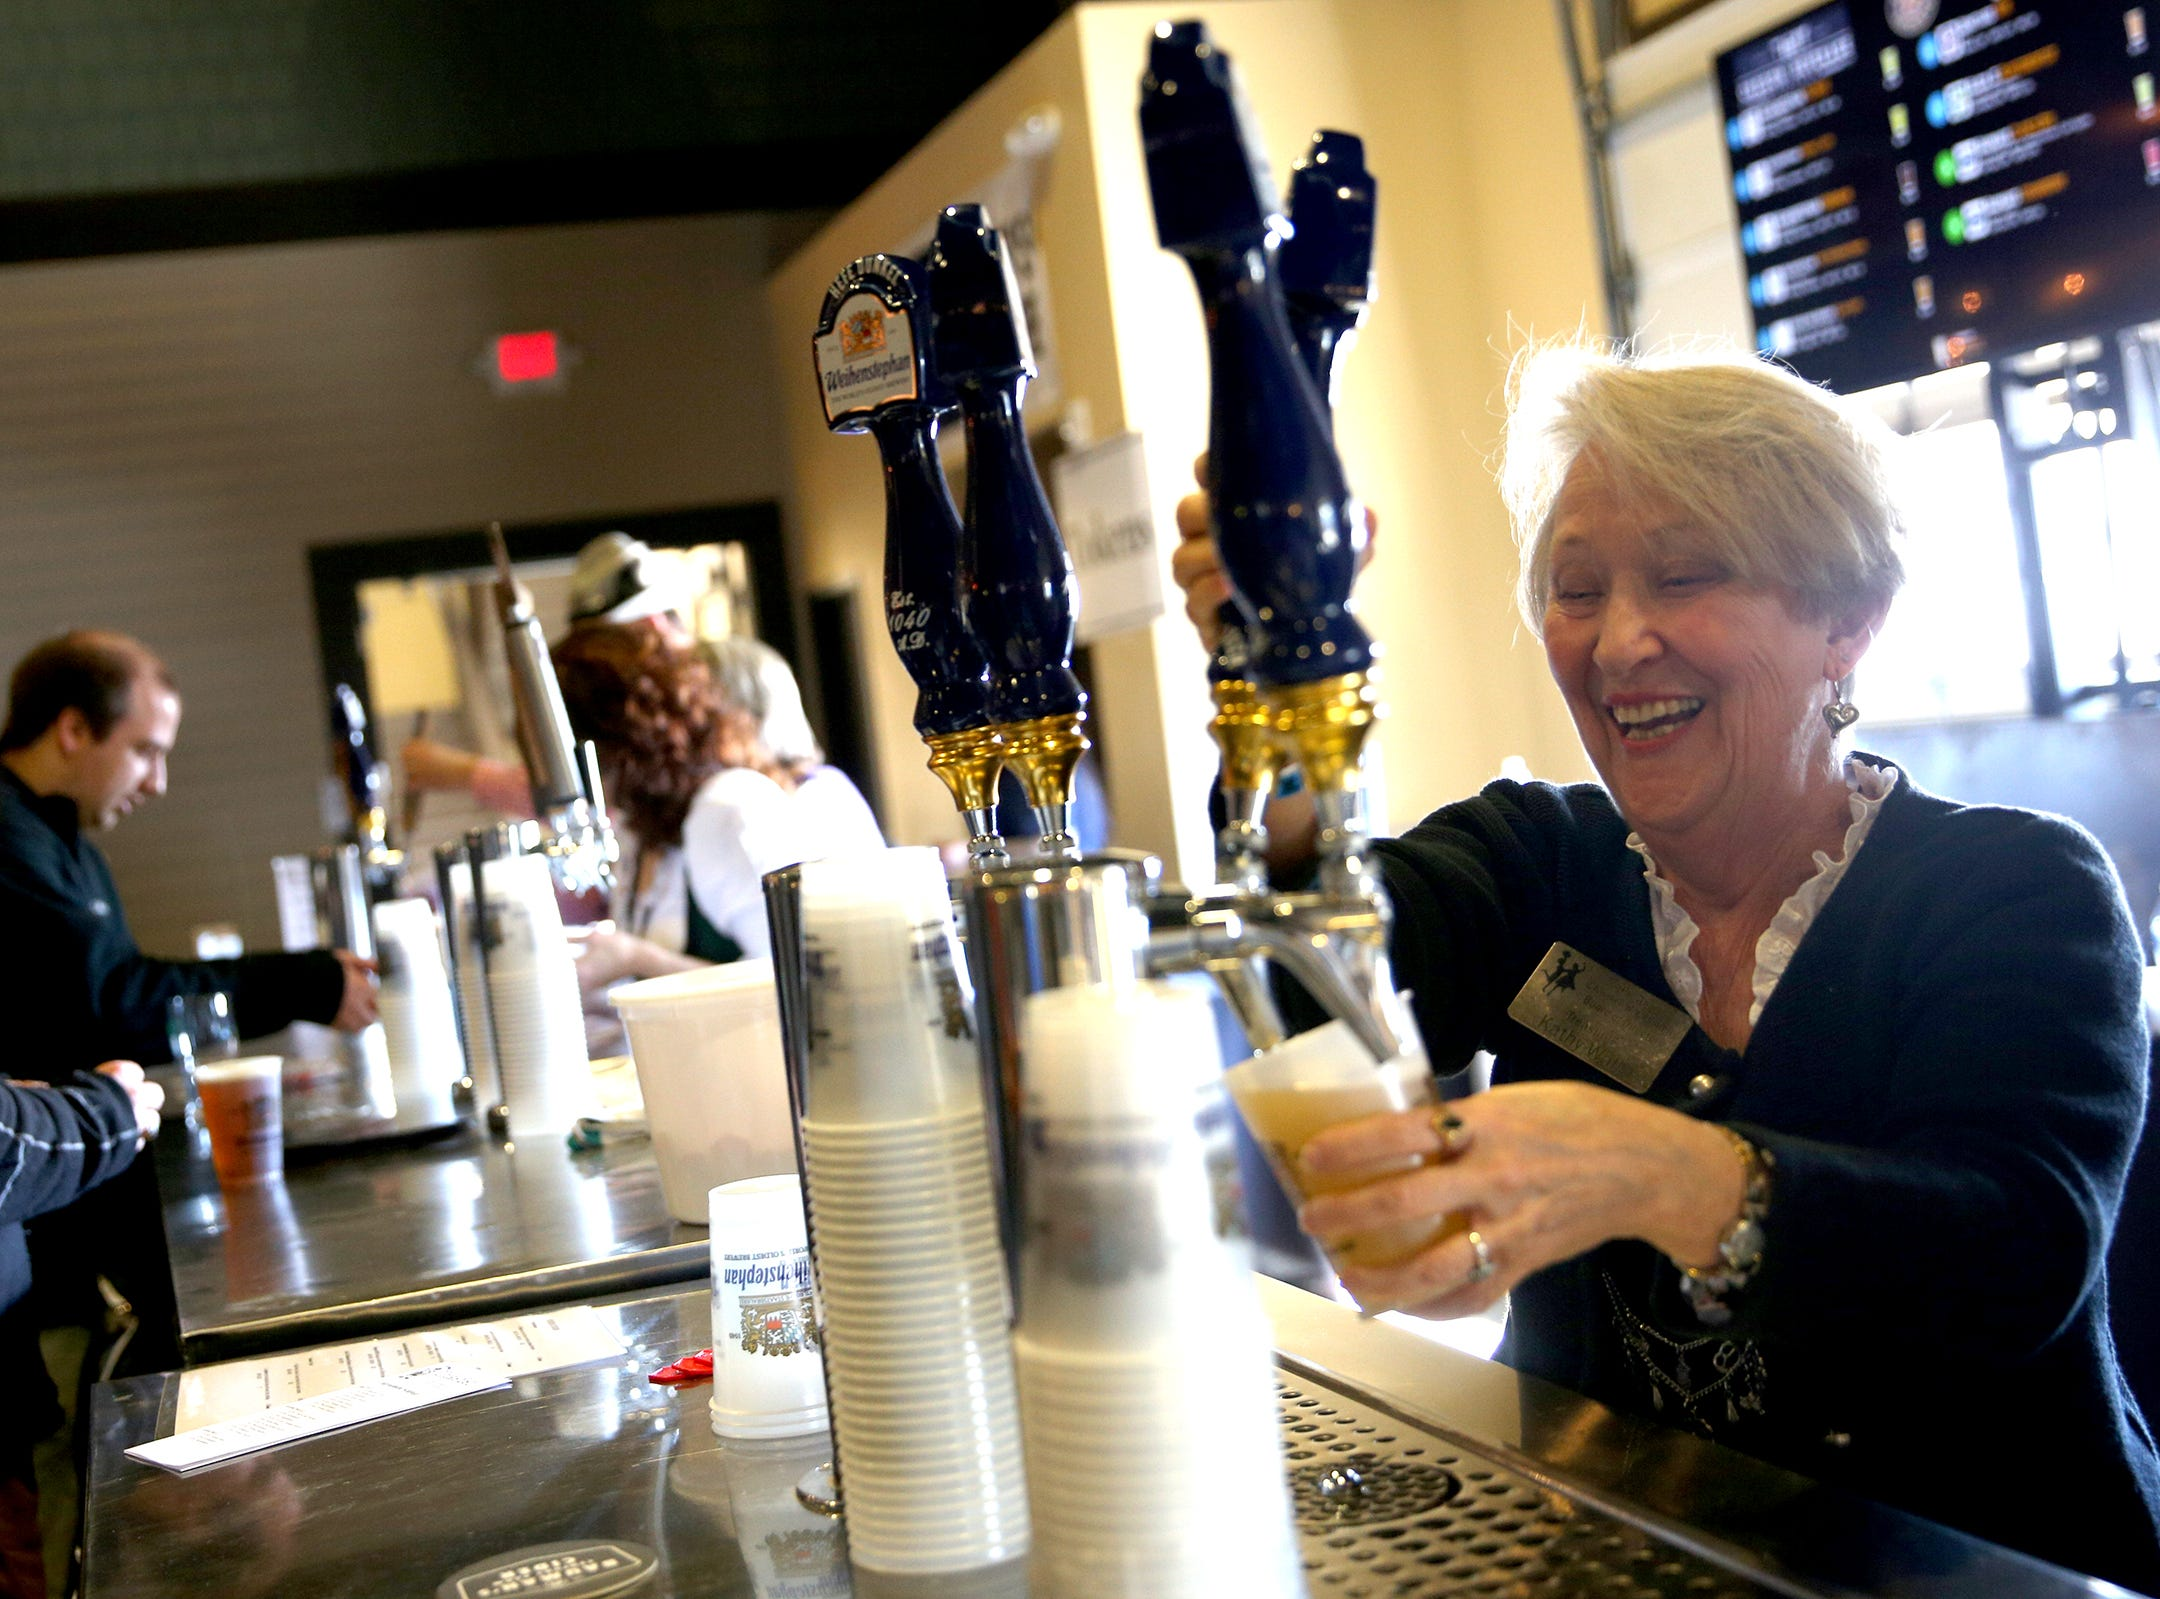 Kathy Wall, treasurer of the Mt, Angel Chamber, bartends at the annual Volksfest in Mt. Angel on Saturday, March 2, 2019.